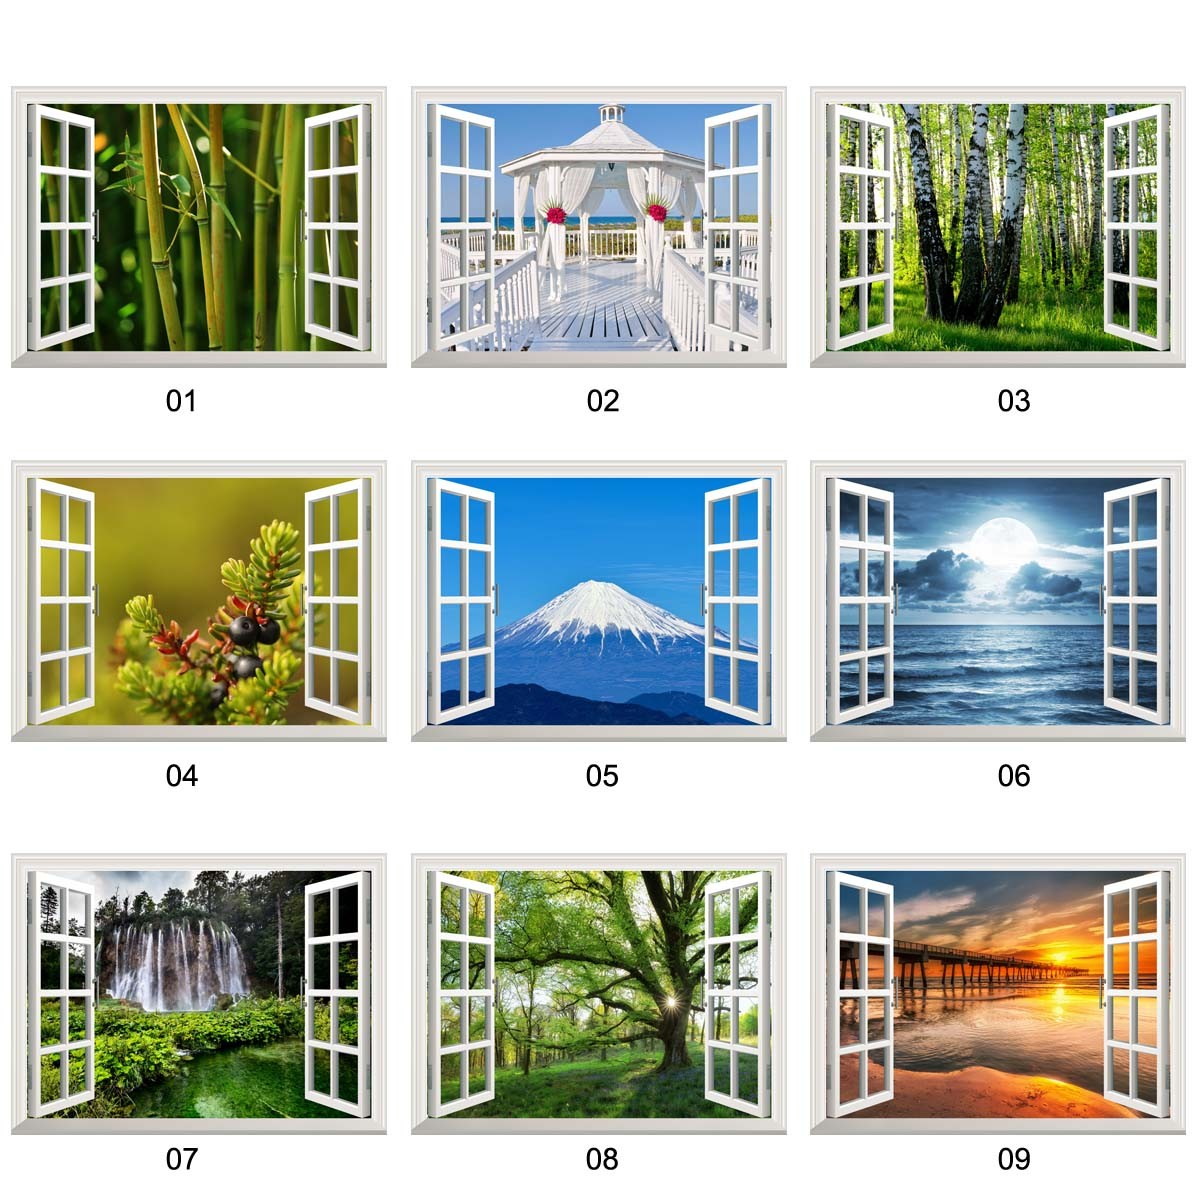 removable wall sticker wall mural 3d open window forest scenery 3d removable open window